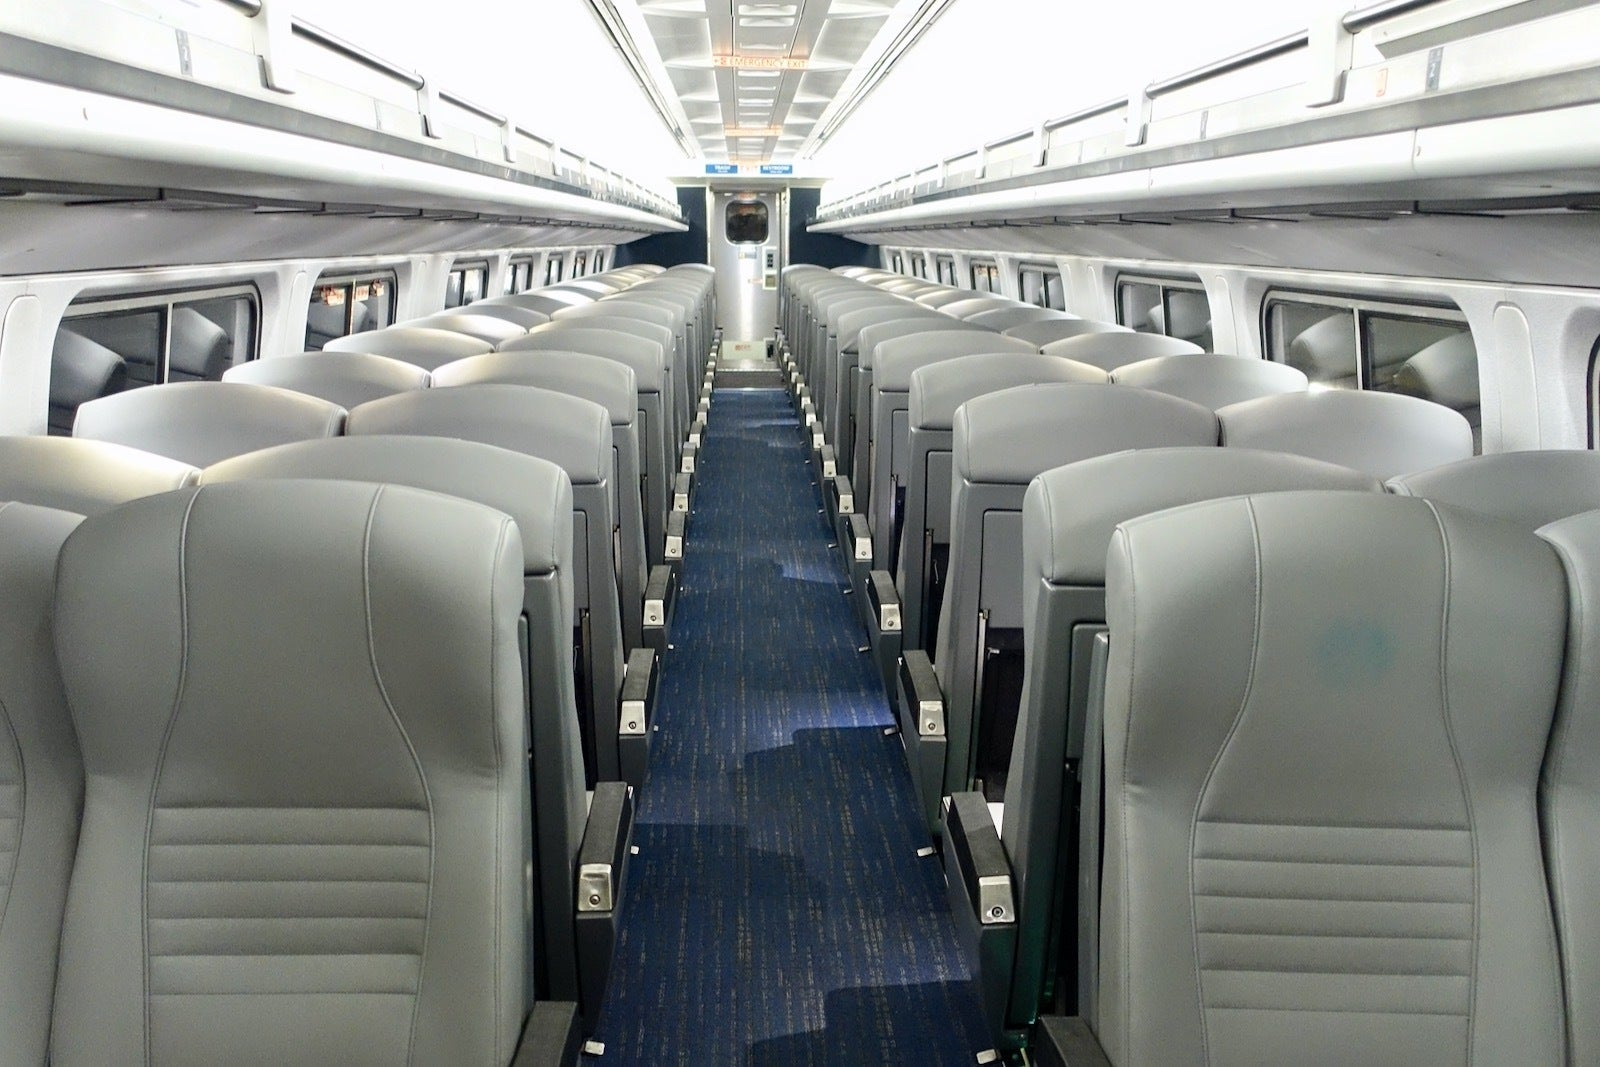 Deals of the week: Amtrak kids travel free, $40 transcon flights and more